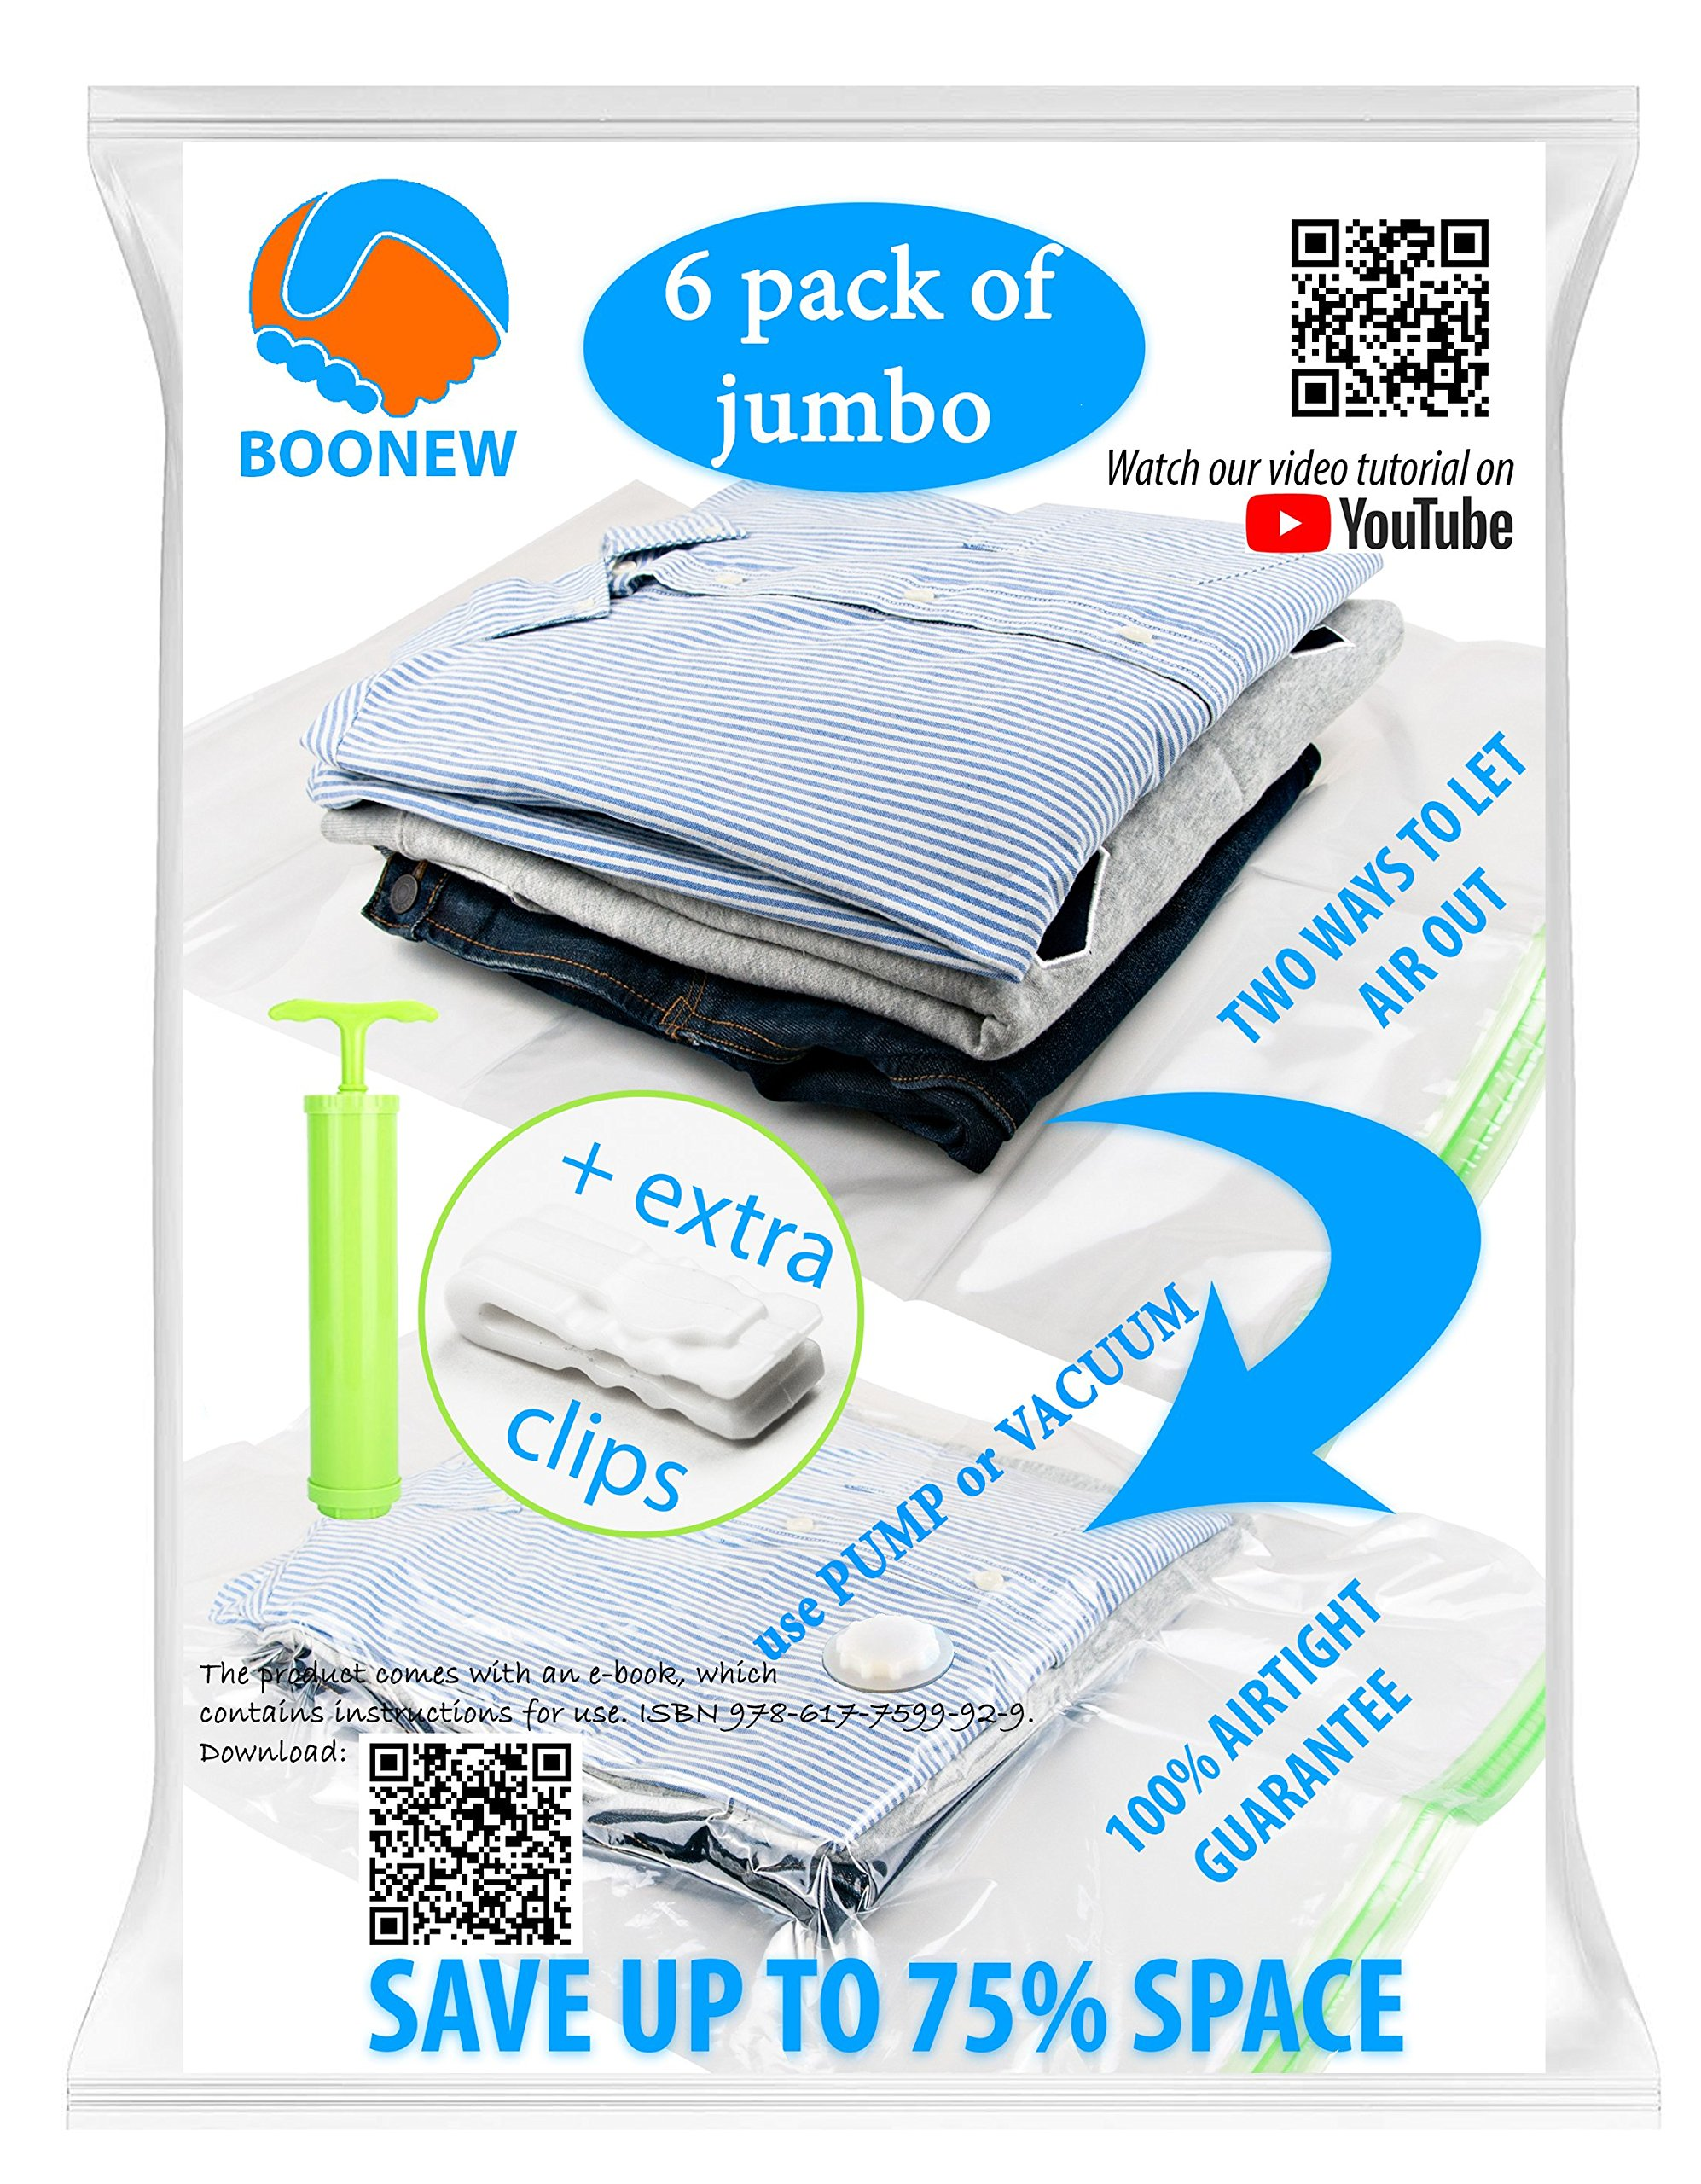 """Boonew Durable 6 Jumbo Vacuum Storage Bags for Clothes, Bedding, Pillows, Space Saver Compression Sacks Size 28x40"""" (Pack of 6)"""